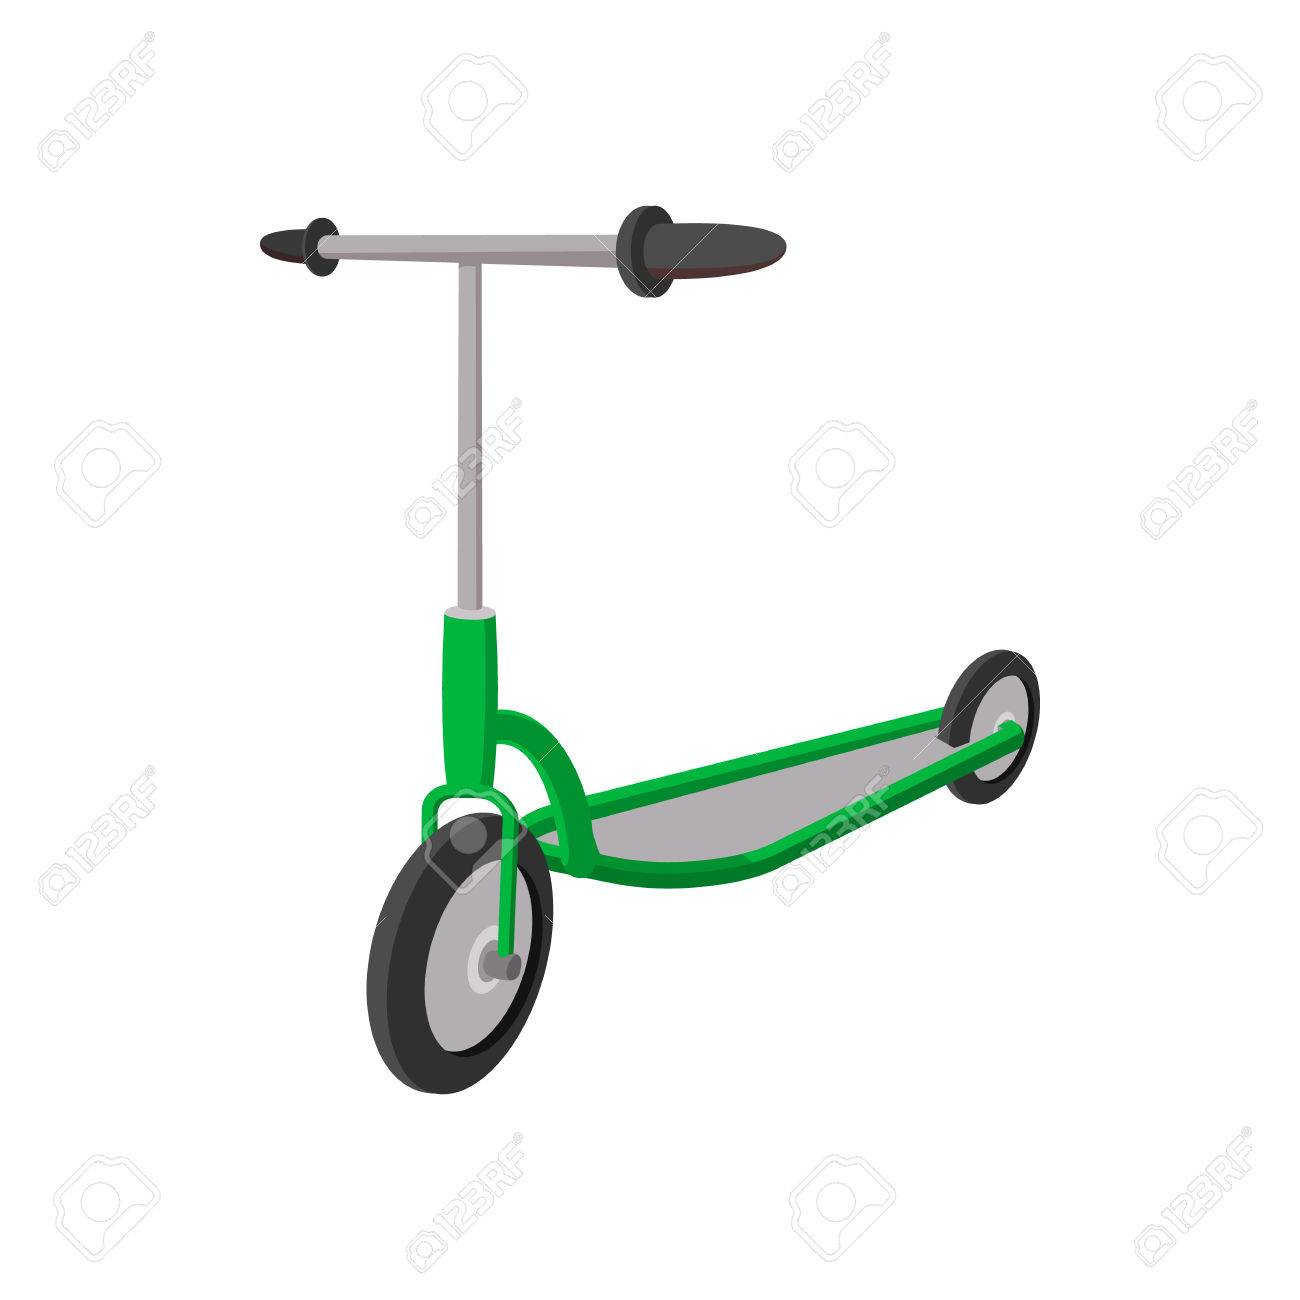 Kick Scooter Cartoon Icon On A White Background Royalty 1300x1300